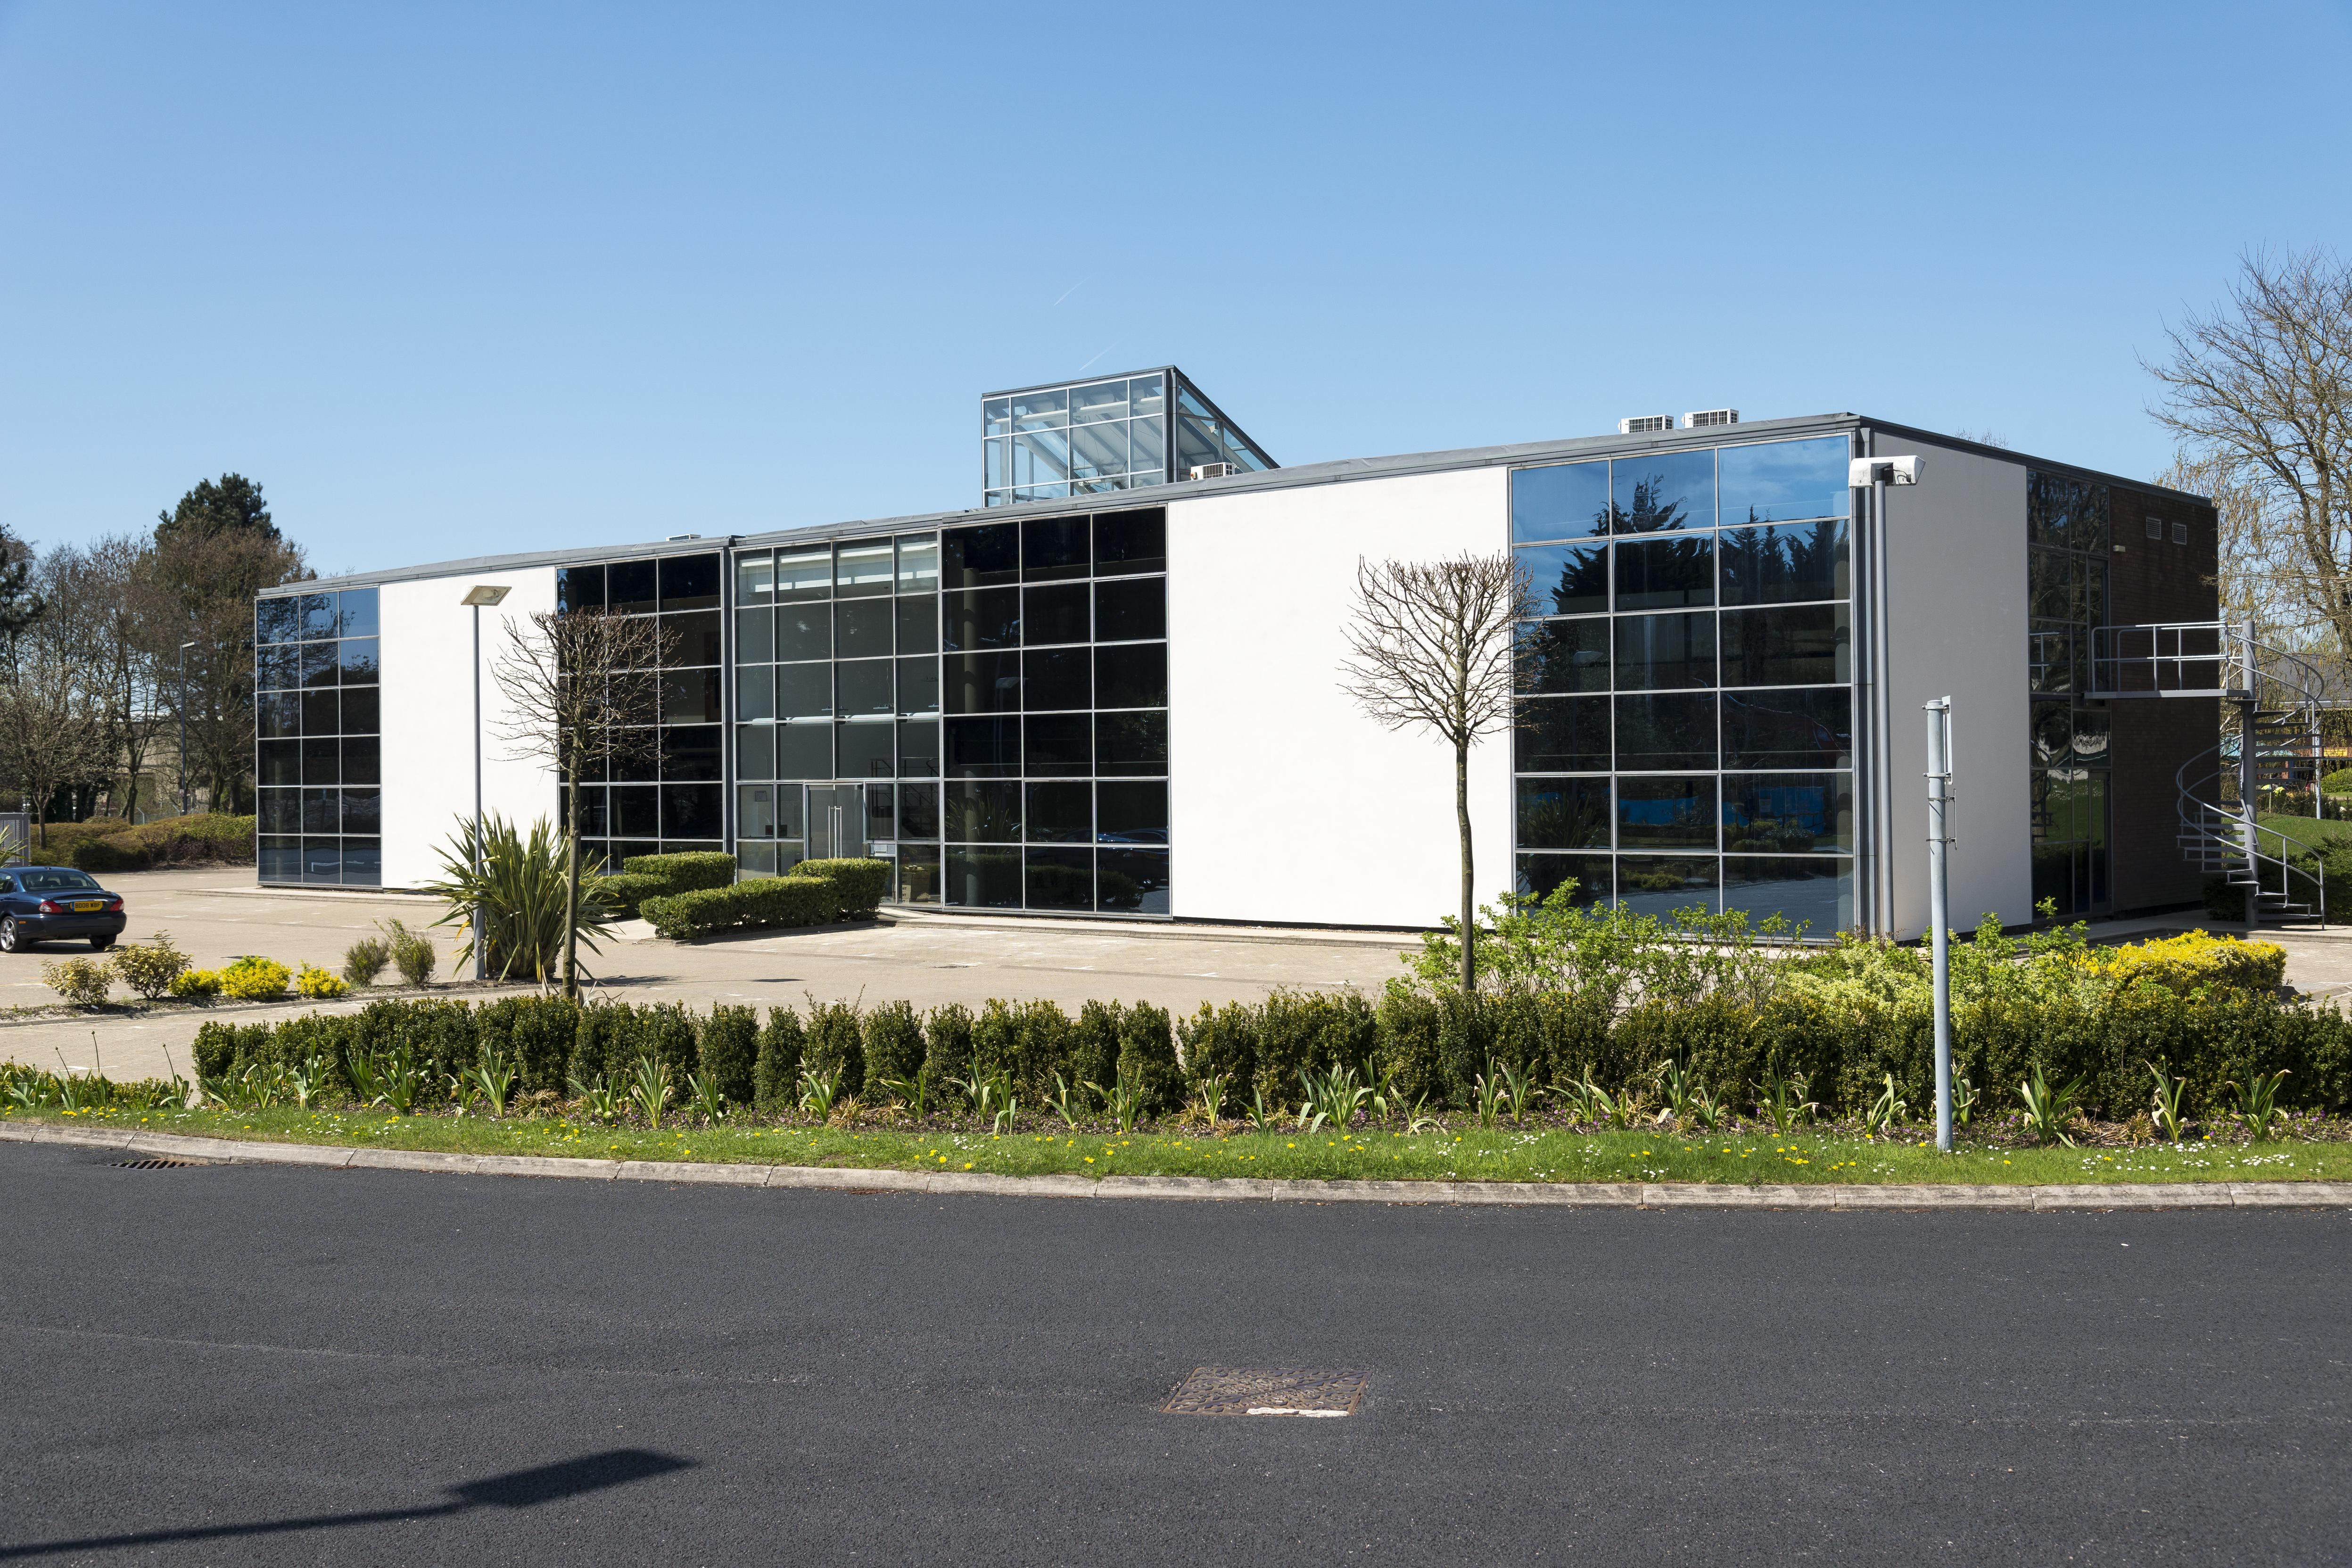 Suite 3, Building 4.3, Frimley 4 Business Park, Frimley, Offices To Let - frimley4-externals-107 (1).jpg